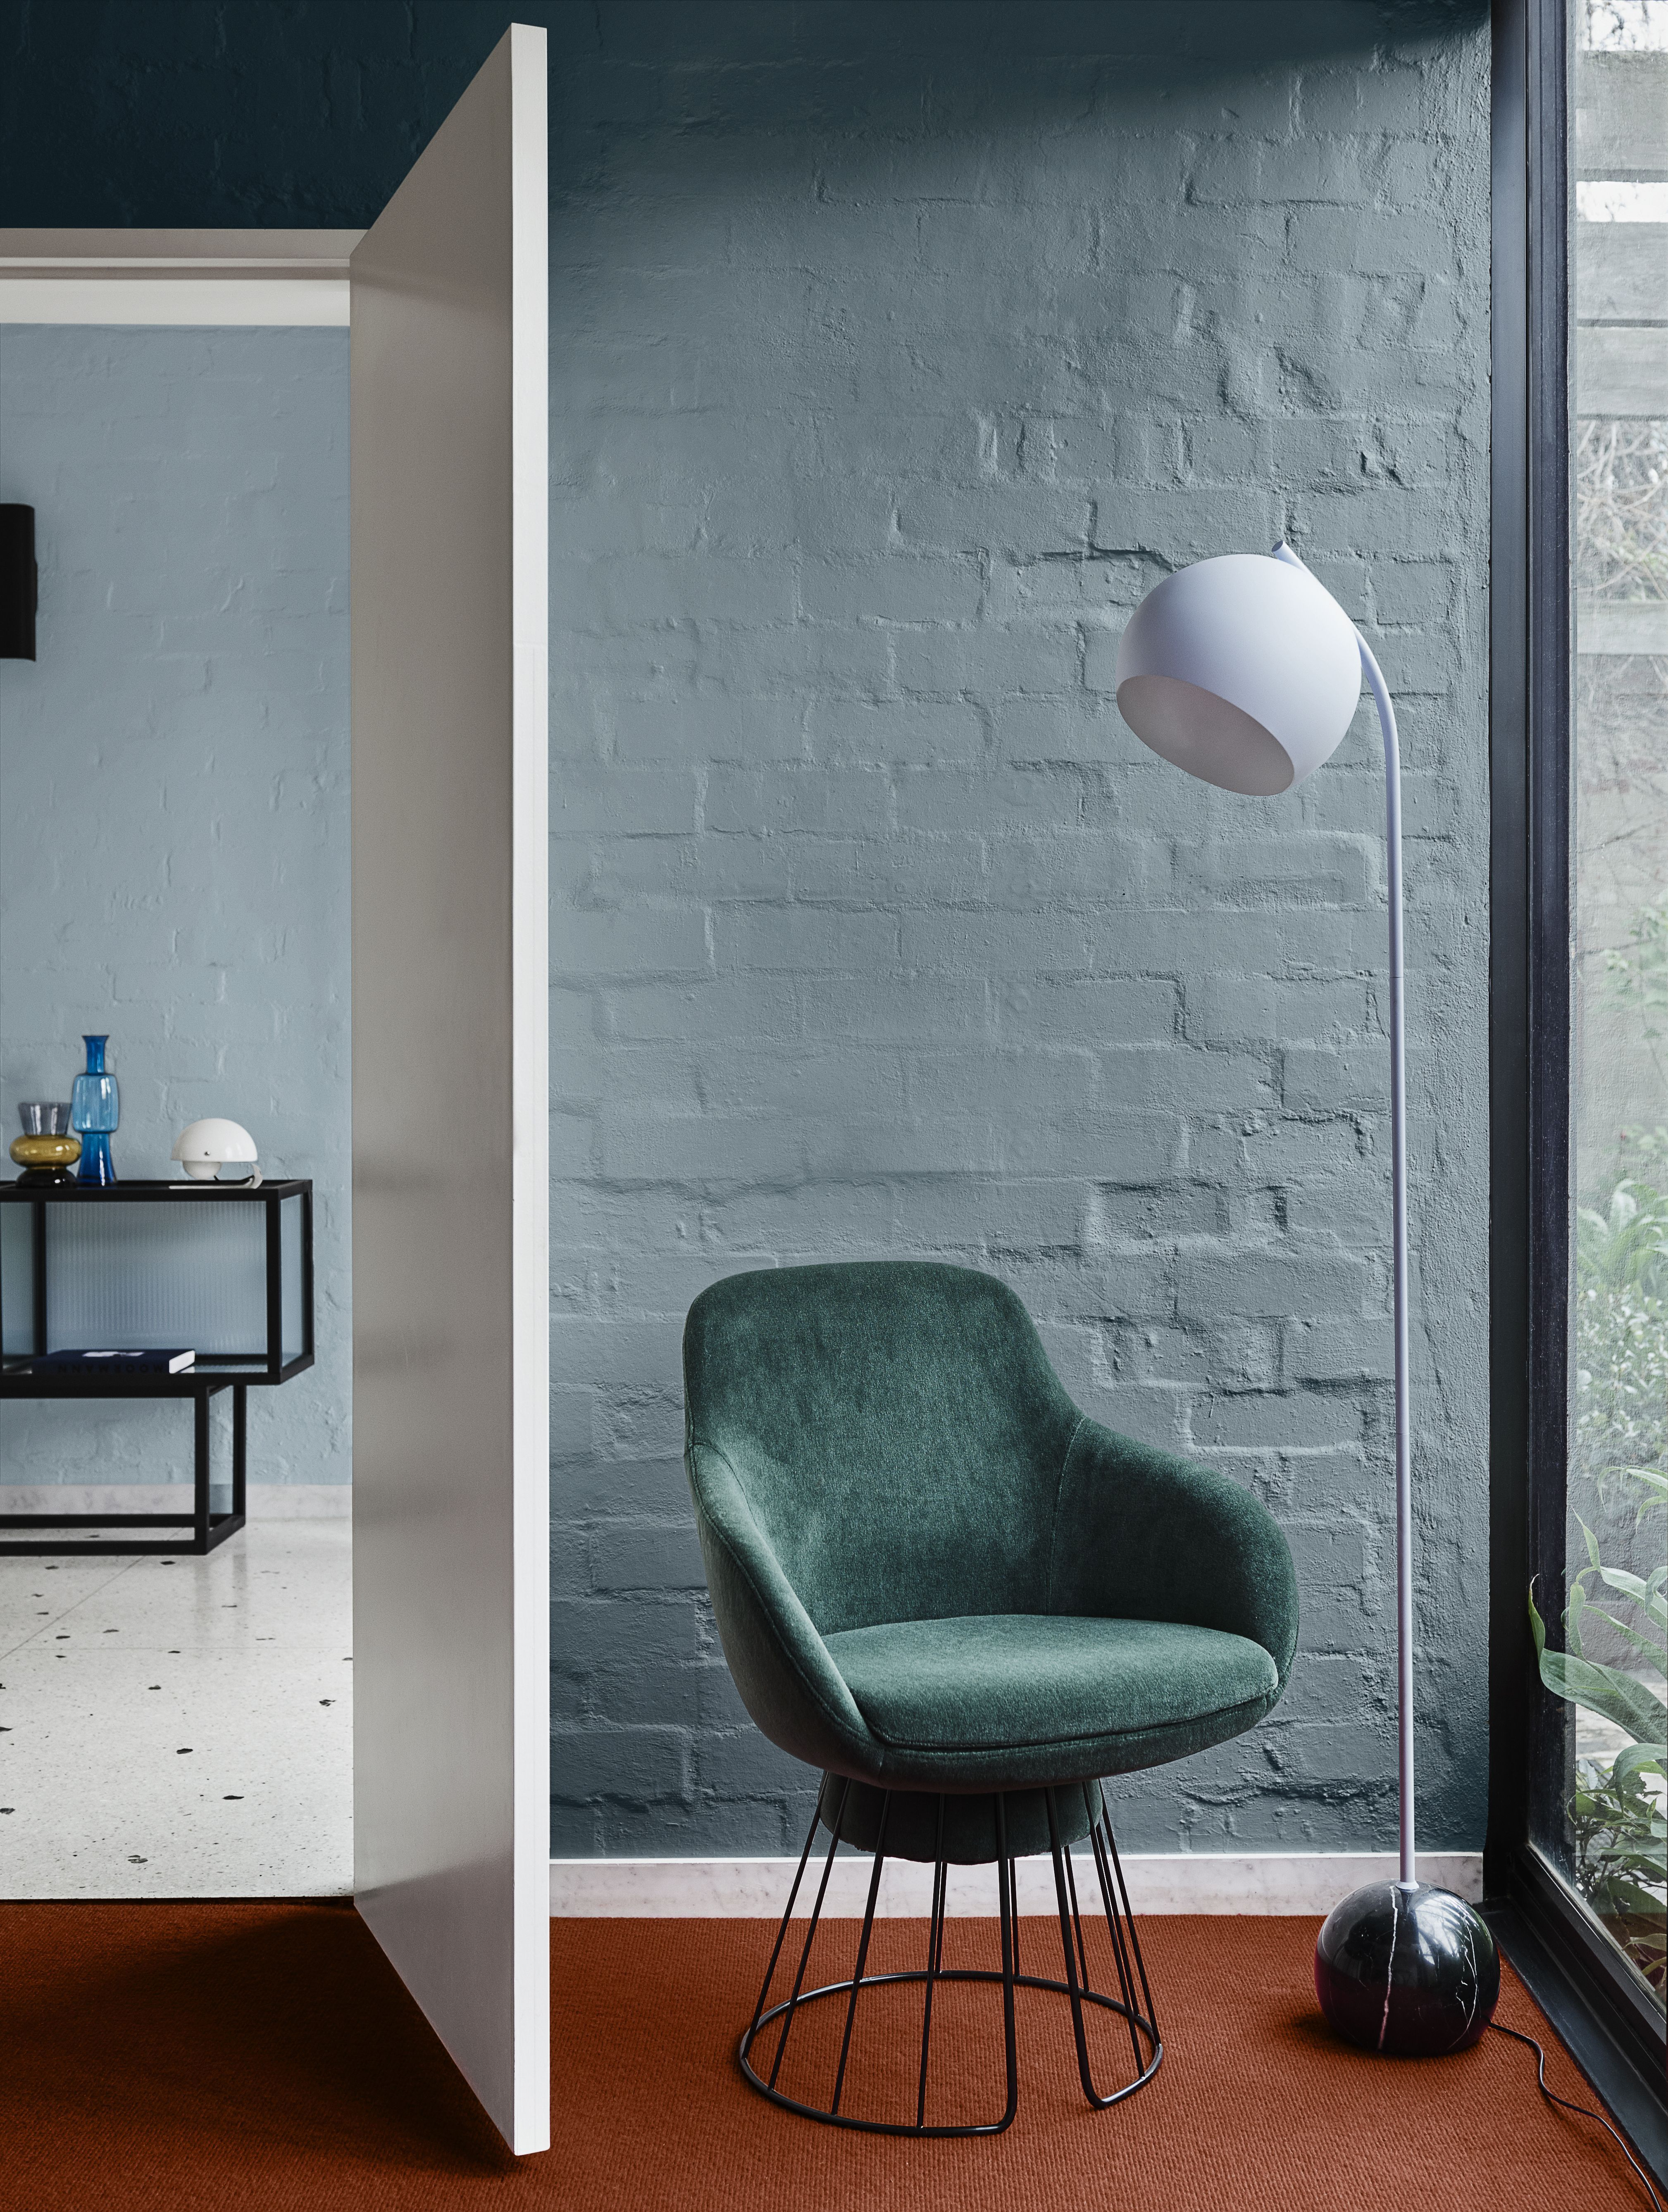 Oct 25, 2019 - Comeback's serene and refreshing tonal blue palette is right at home in a bedroom. Tap into the terrazzo revival with graphically patterned textiles. From the Dulux 2020 Colour Forecast trend 'Comeback'. Dulux colours: Lake Camp, Undersea. #Dulux #bluetheme #bluecolourscheme #houseenvy